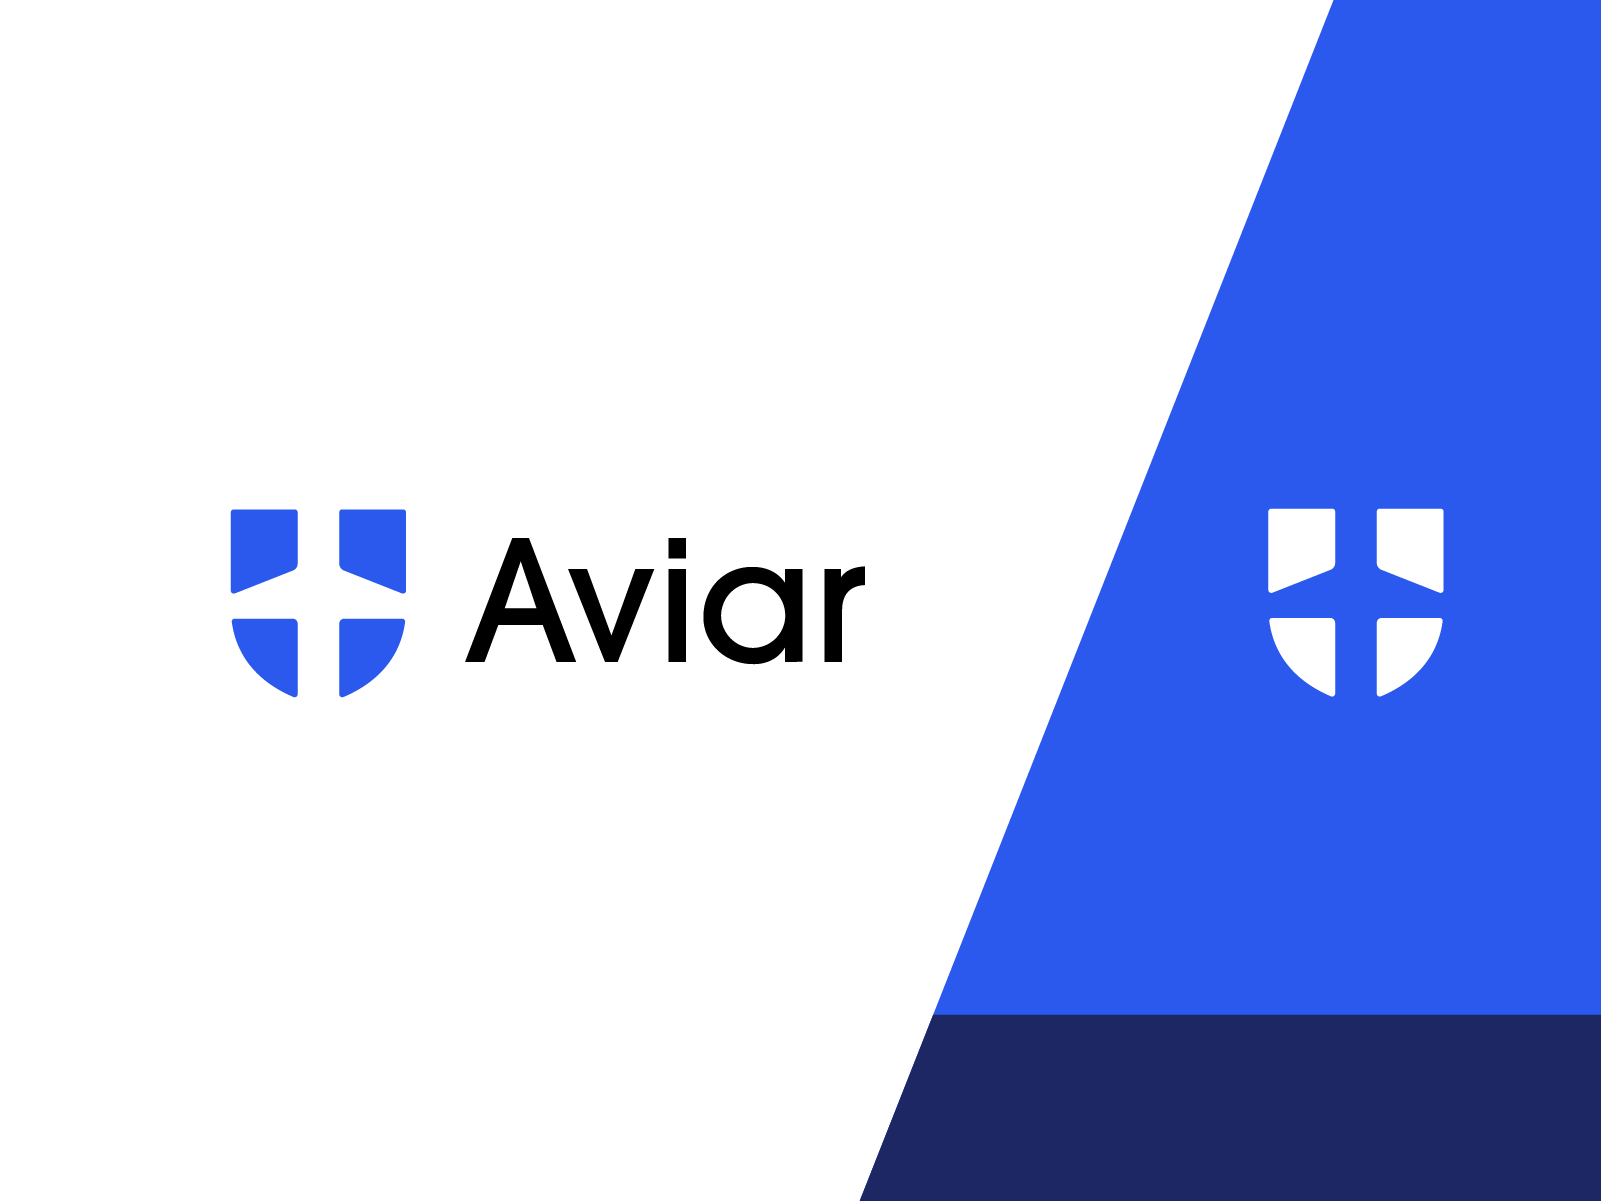 aviar logo design